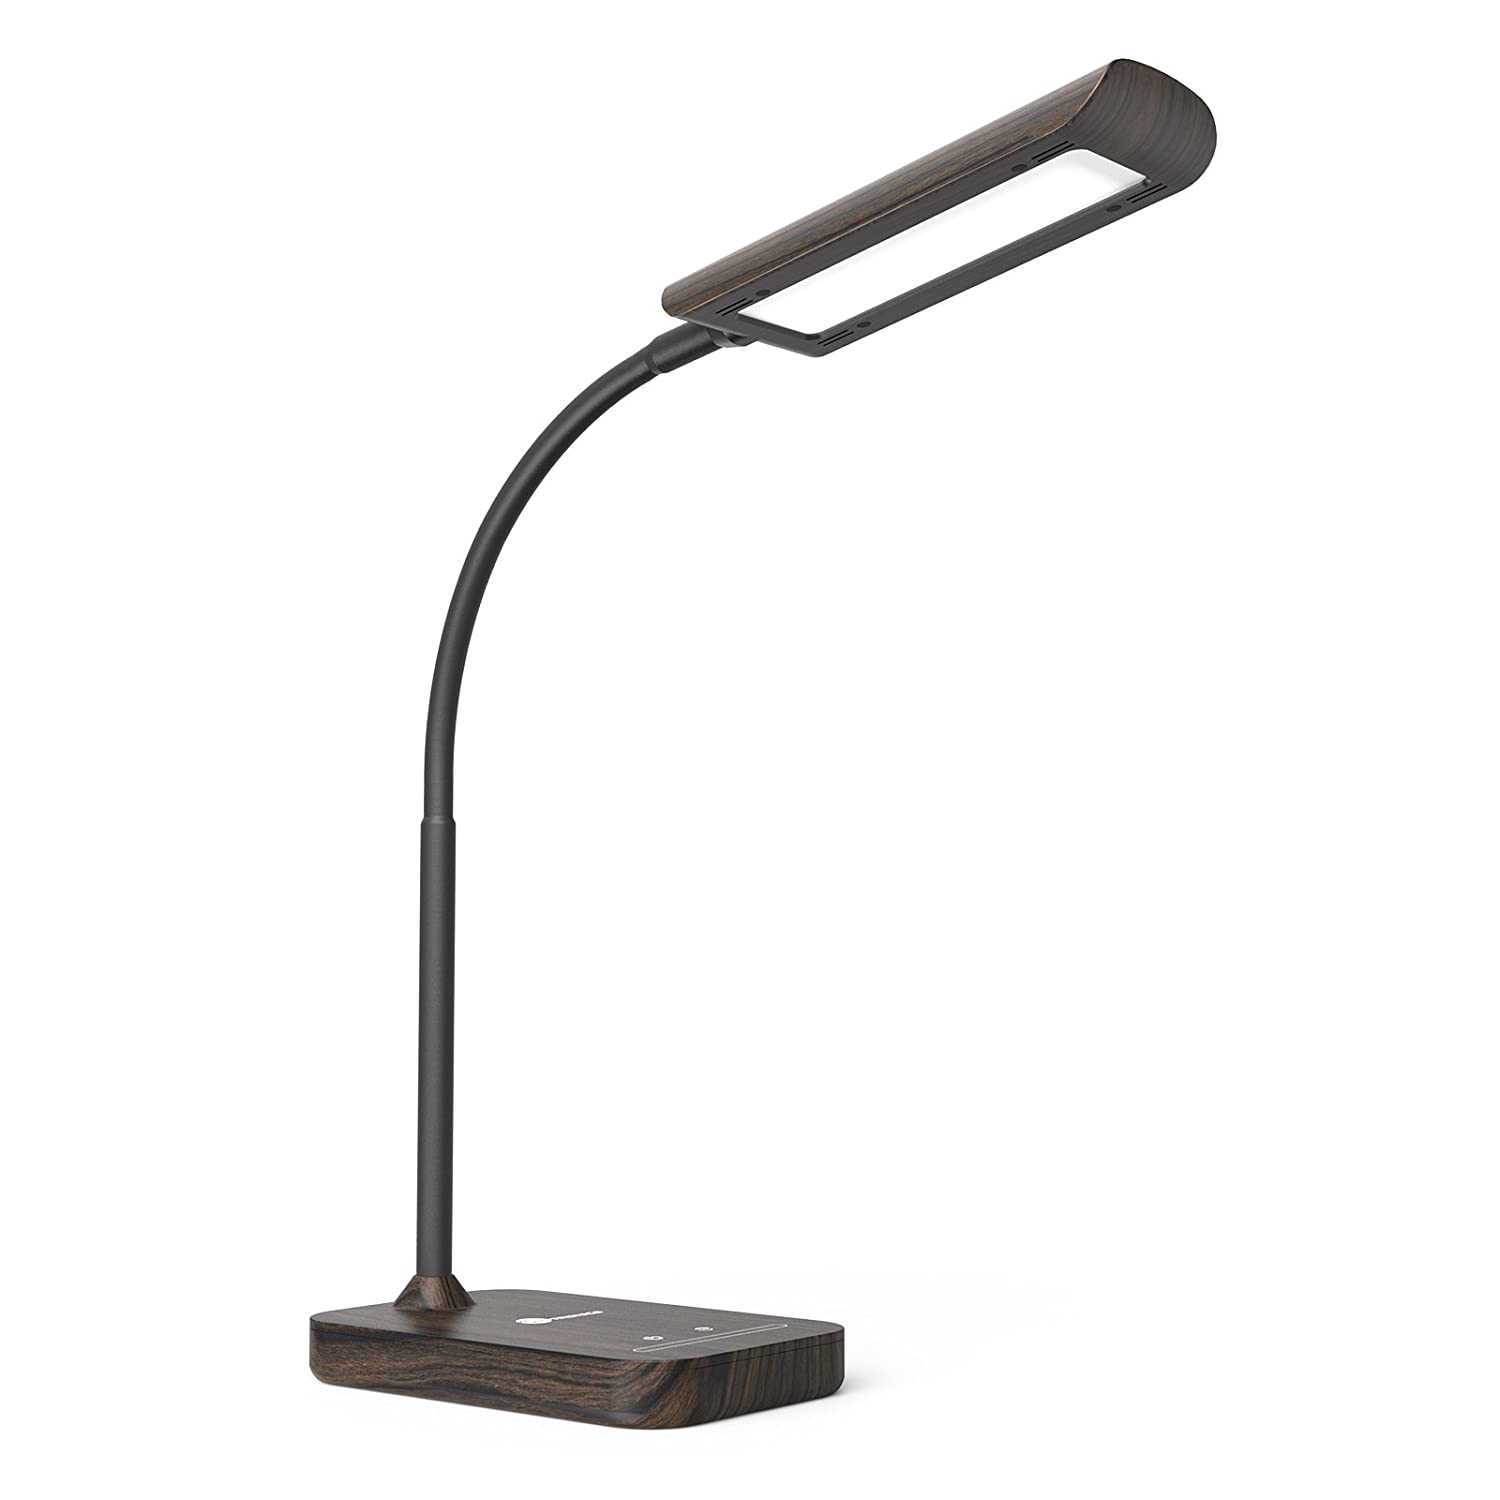 TaoTronics LED Desk Lamp, Flexible Gooseneck Table Lamp, 5 Color Temperatures with 7 Brightness Levels, Touch Control, Memory Function, 7W, Official Member of Philips EnabLED Licensing Program TT-DL11